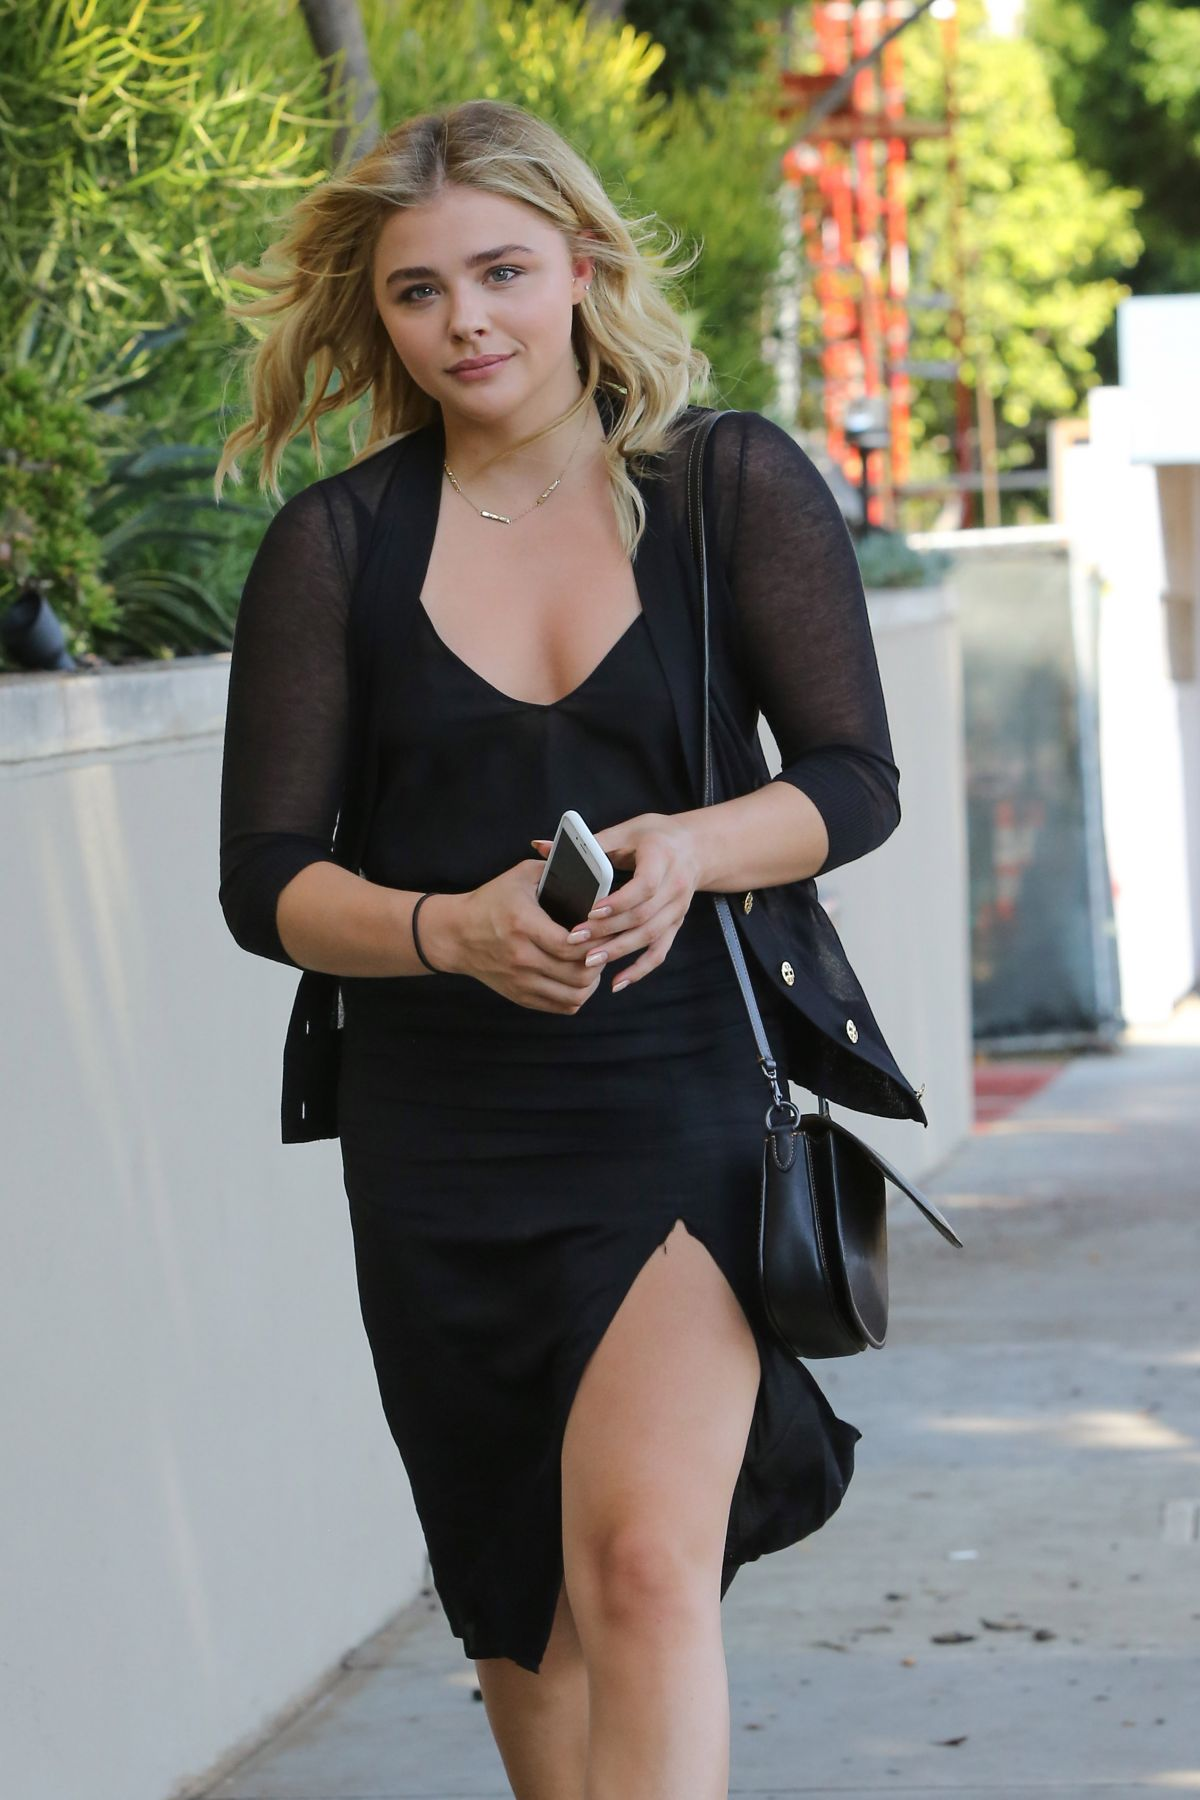 CHLOE MORETZ Out and About in Beverly Hills 08/23/2016